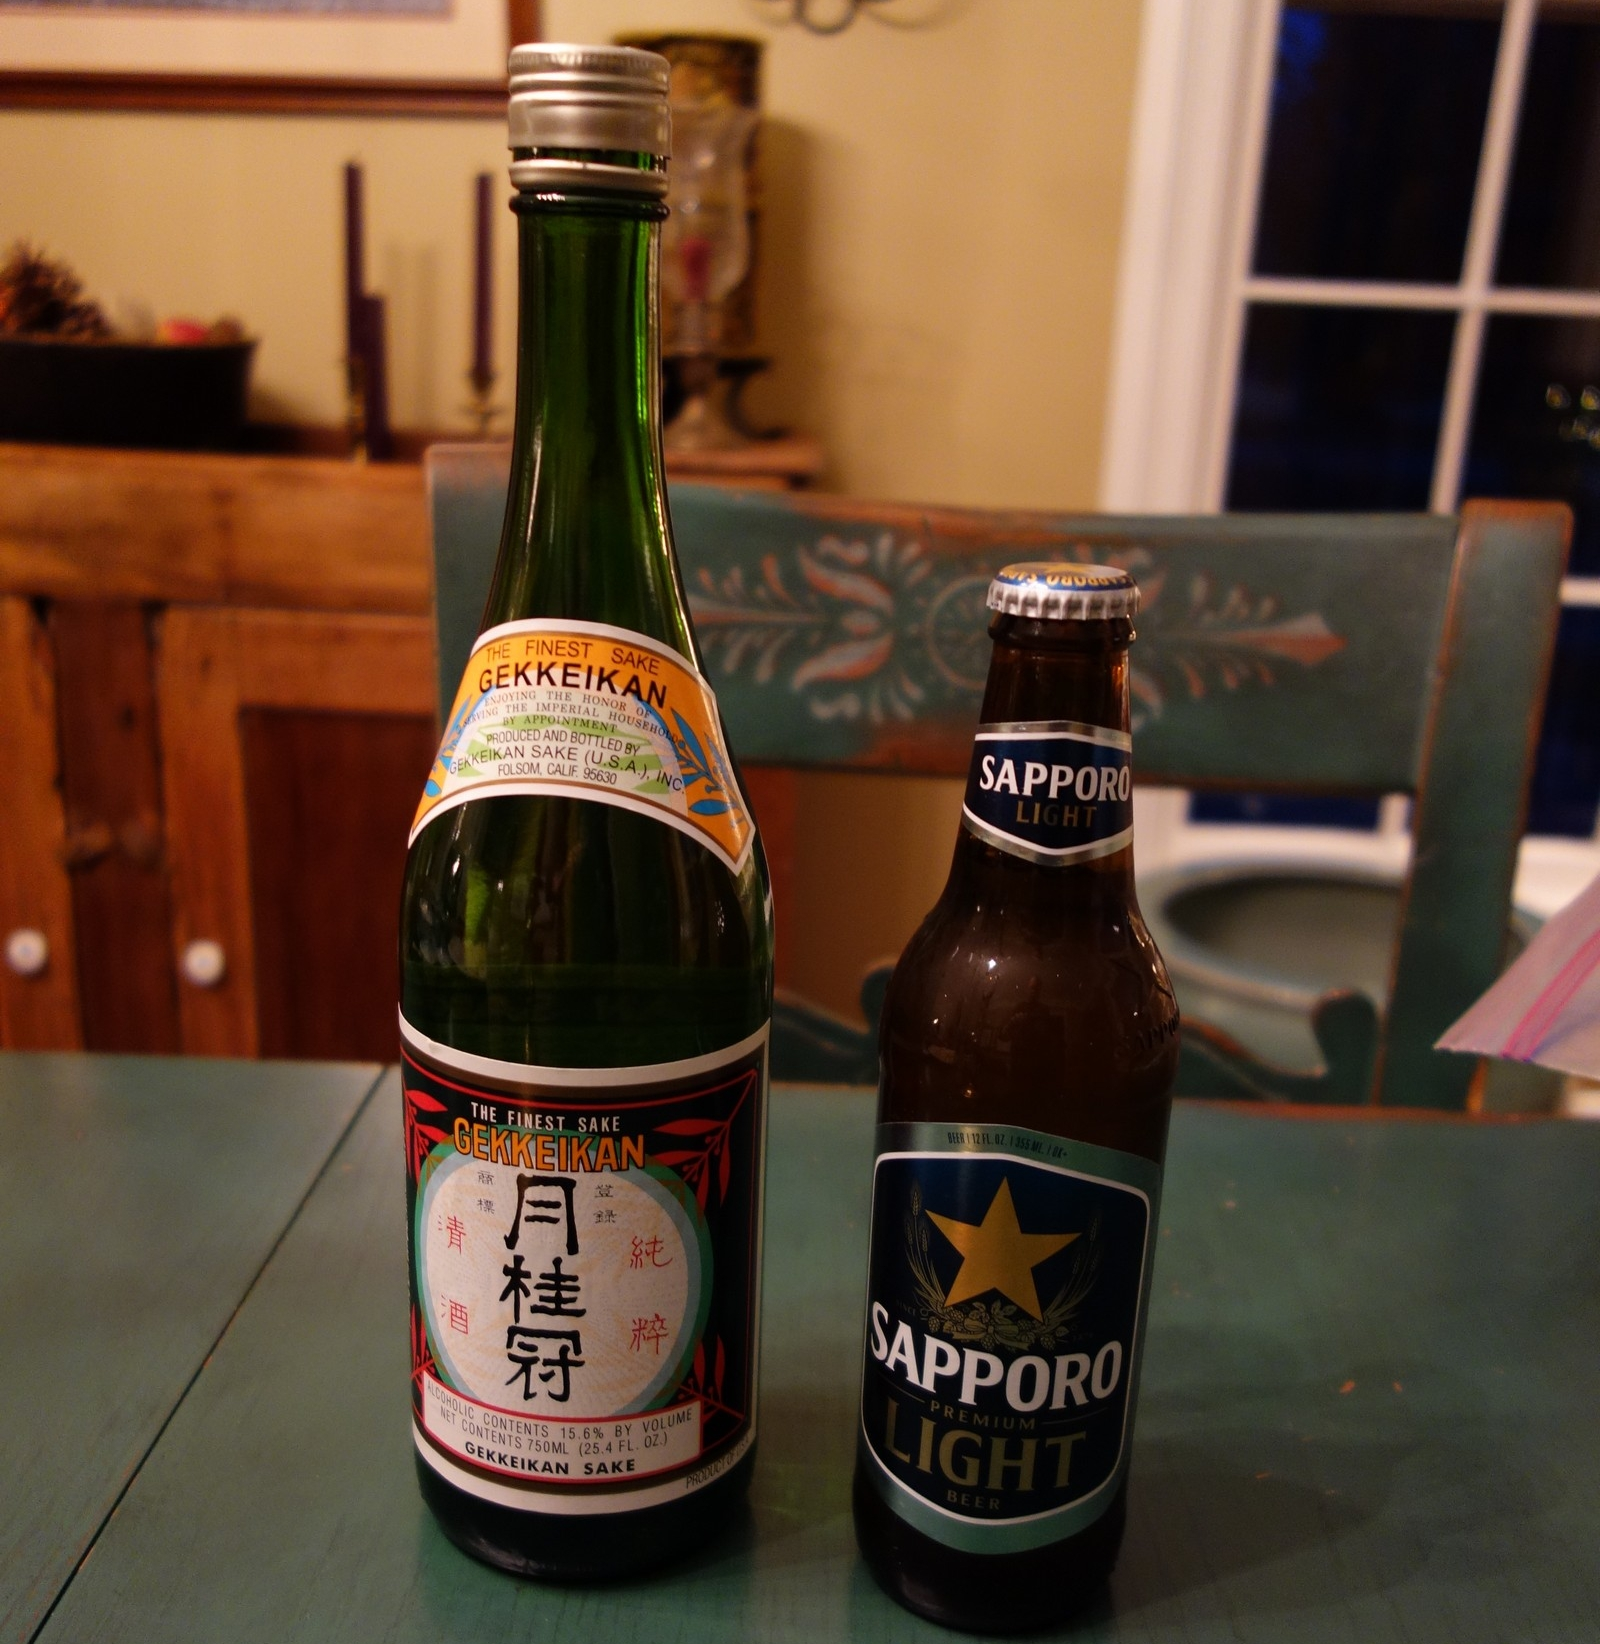 A little Sake and a Japanese beer (Sapporo, Kirin, or Asahi) really add to the Japanese experience.